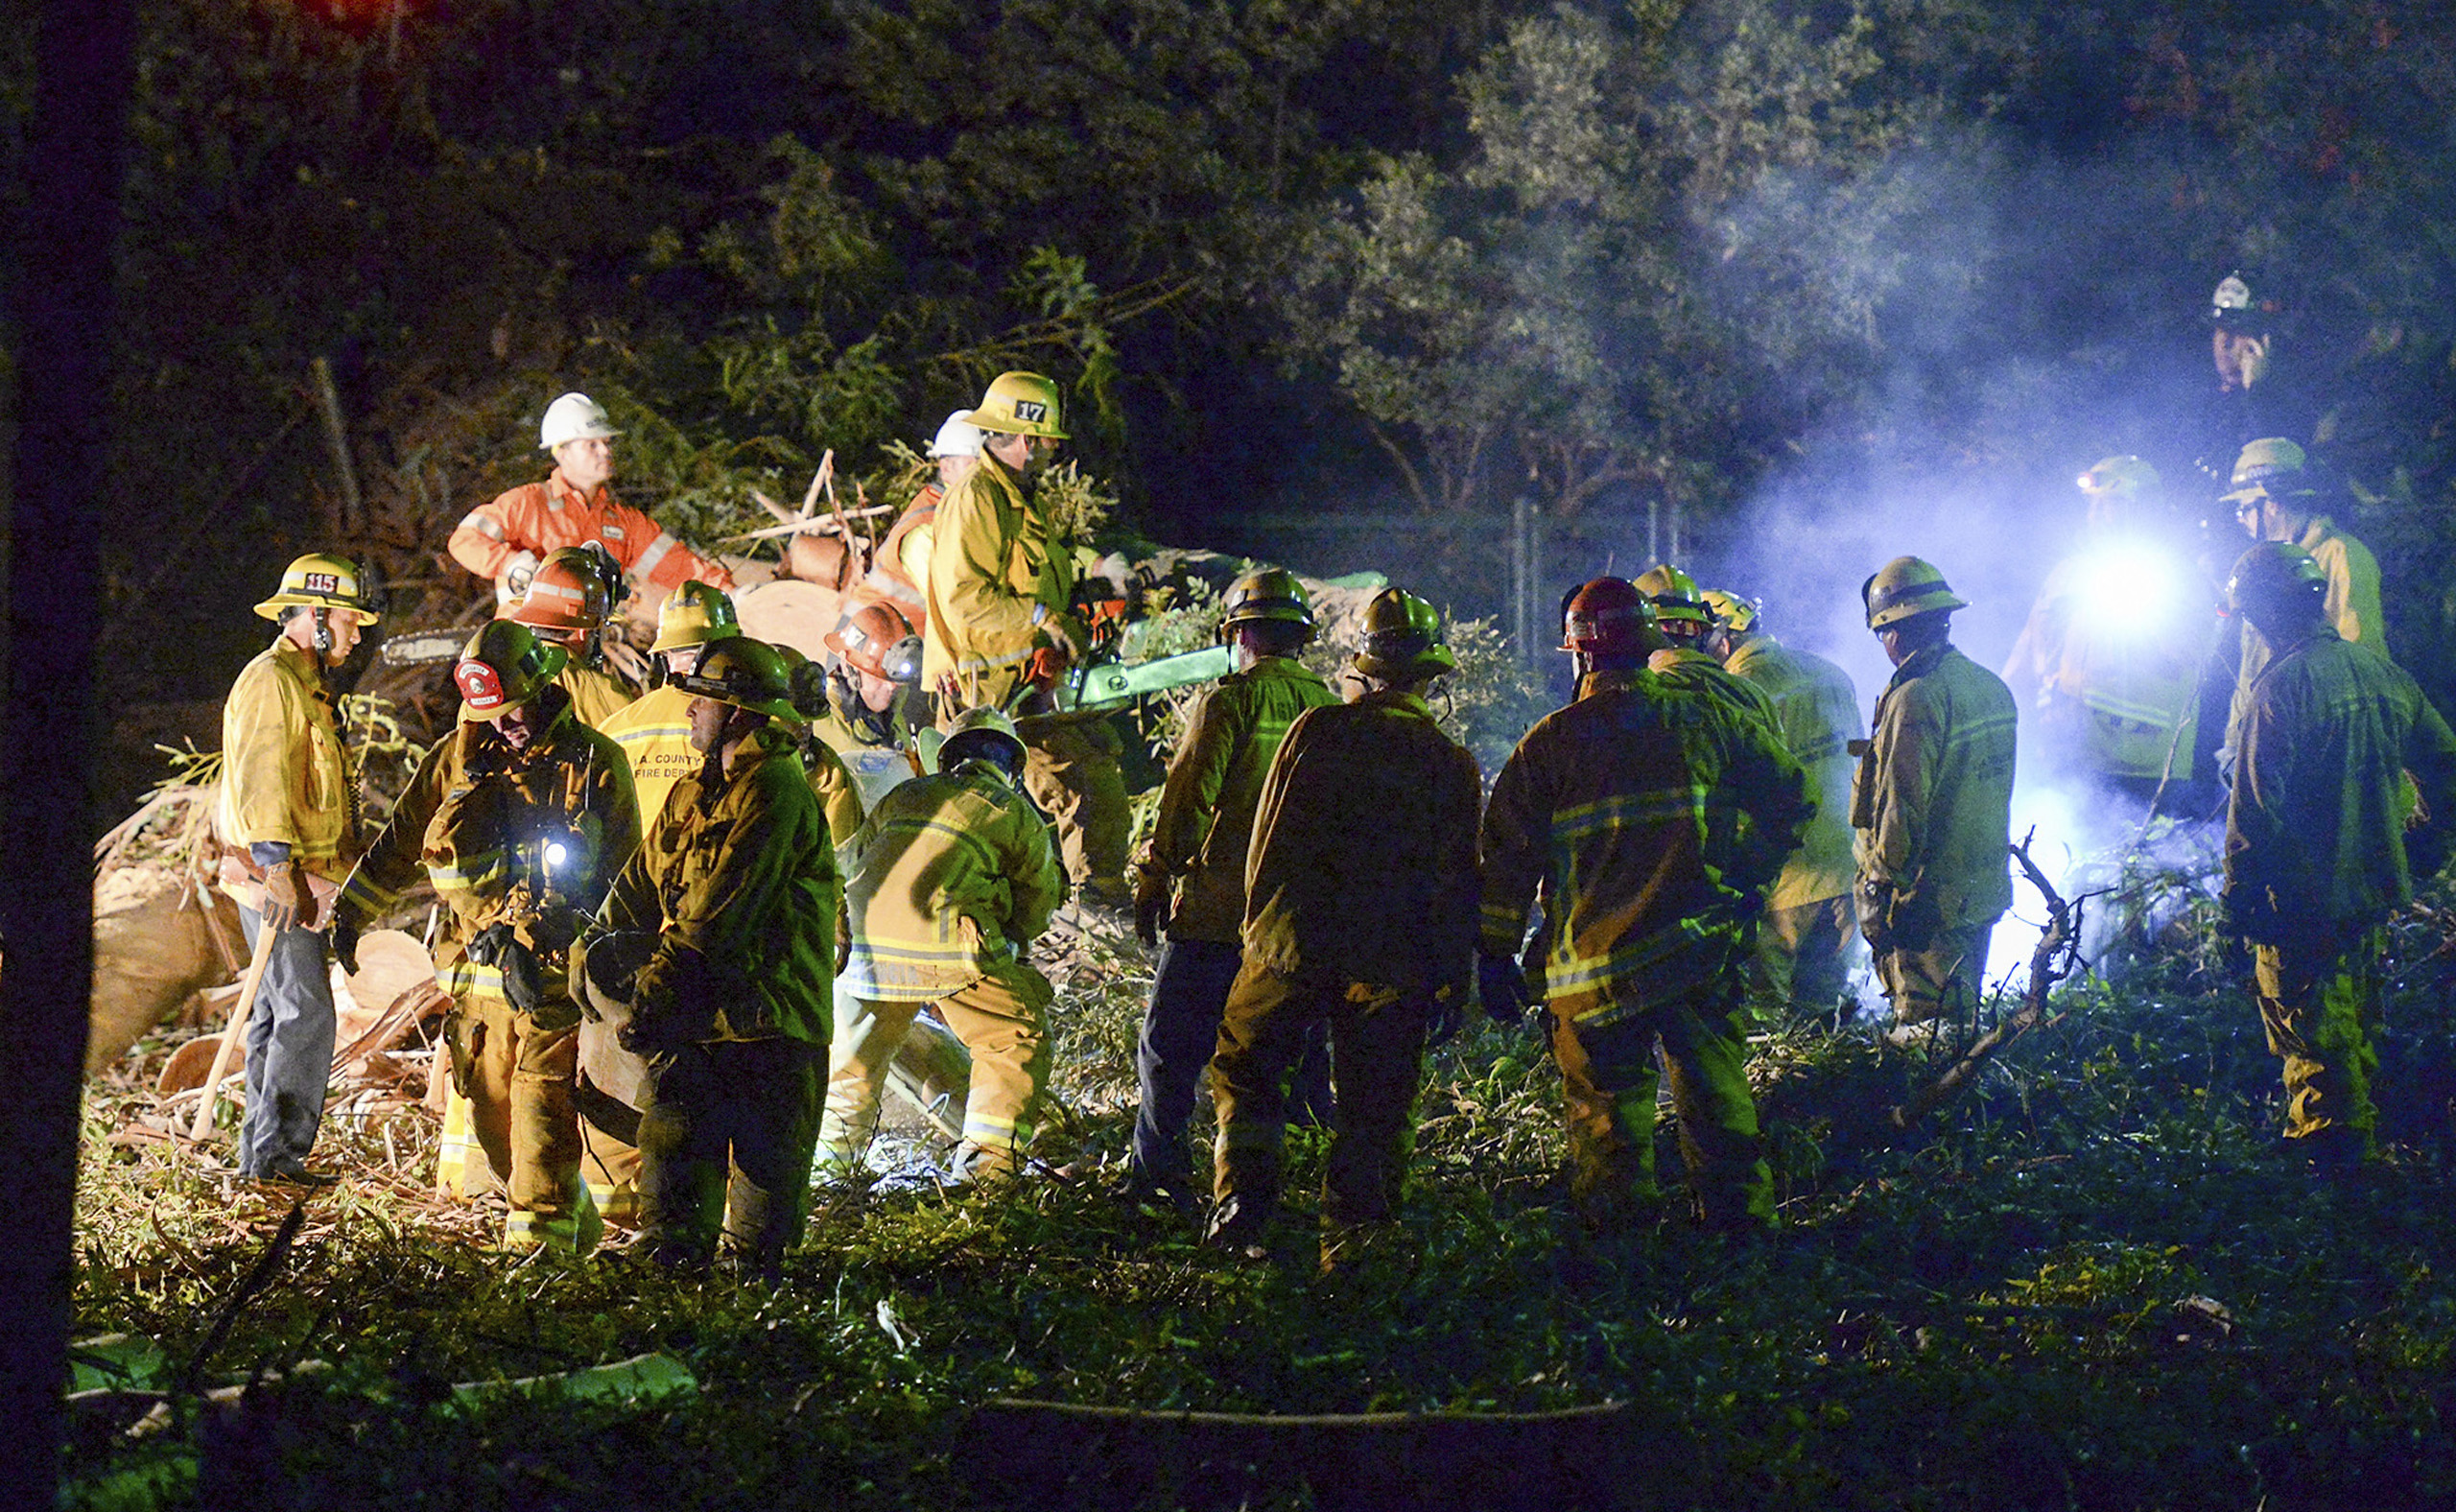 Los Angeles County Fire Dept. firefighters work at the scene where a large tree fell on a wedding party in Whittier, Calif., Saturday, Dec. 17, 2016.